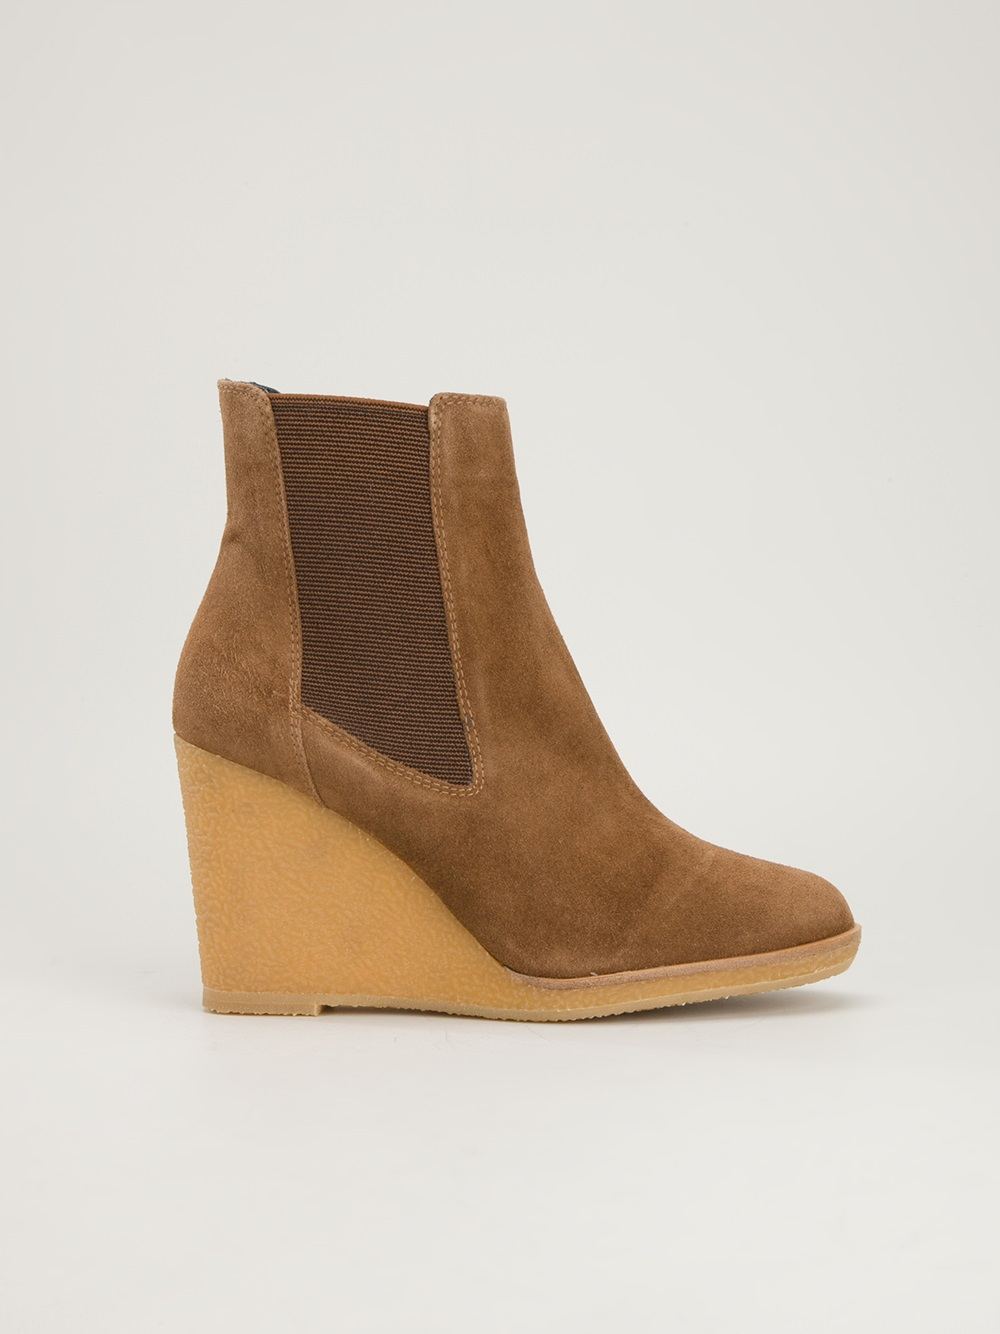 castaner wedge ankle boot in brown lyst